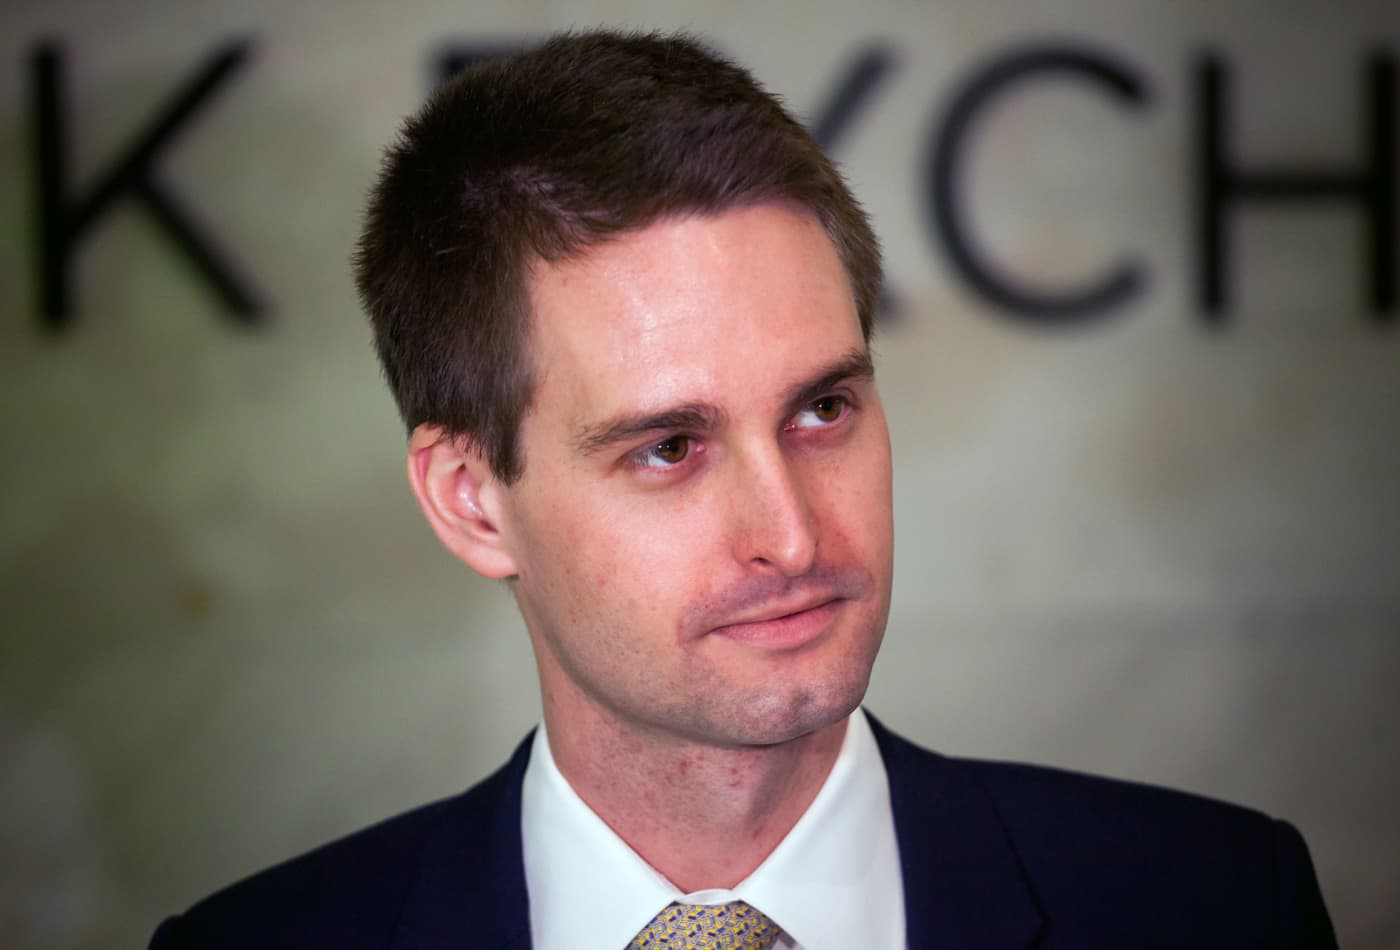 Snap stock rockets up after surprise earnings beat